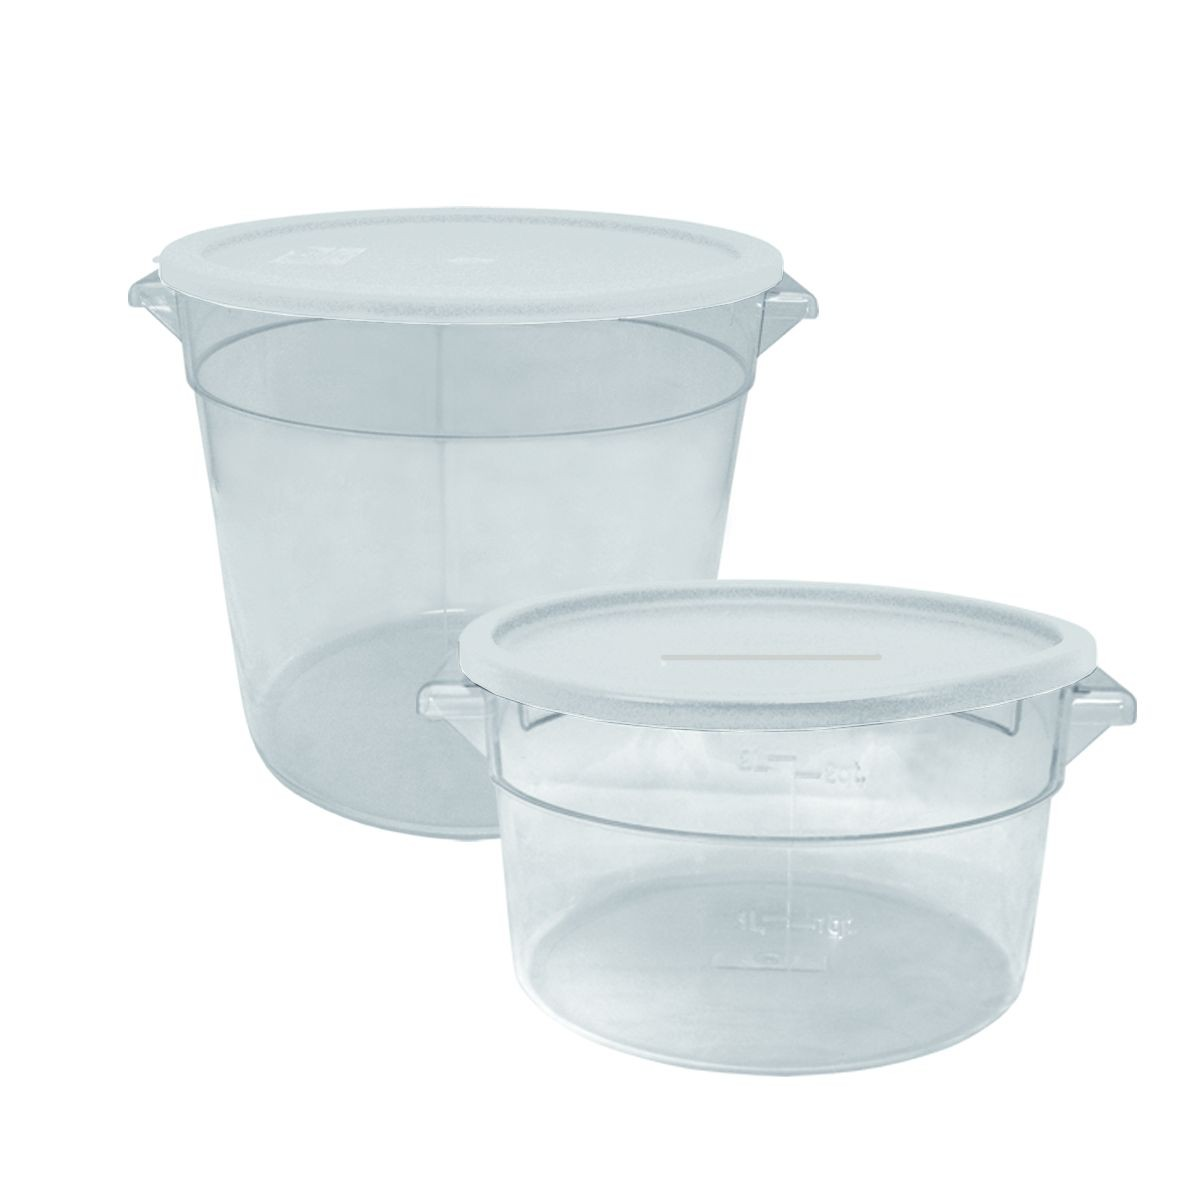 Update International SCR-4PC Round Polycarbonate 4 Qt. Storage Container